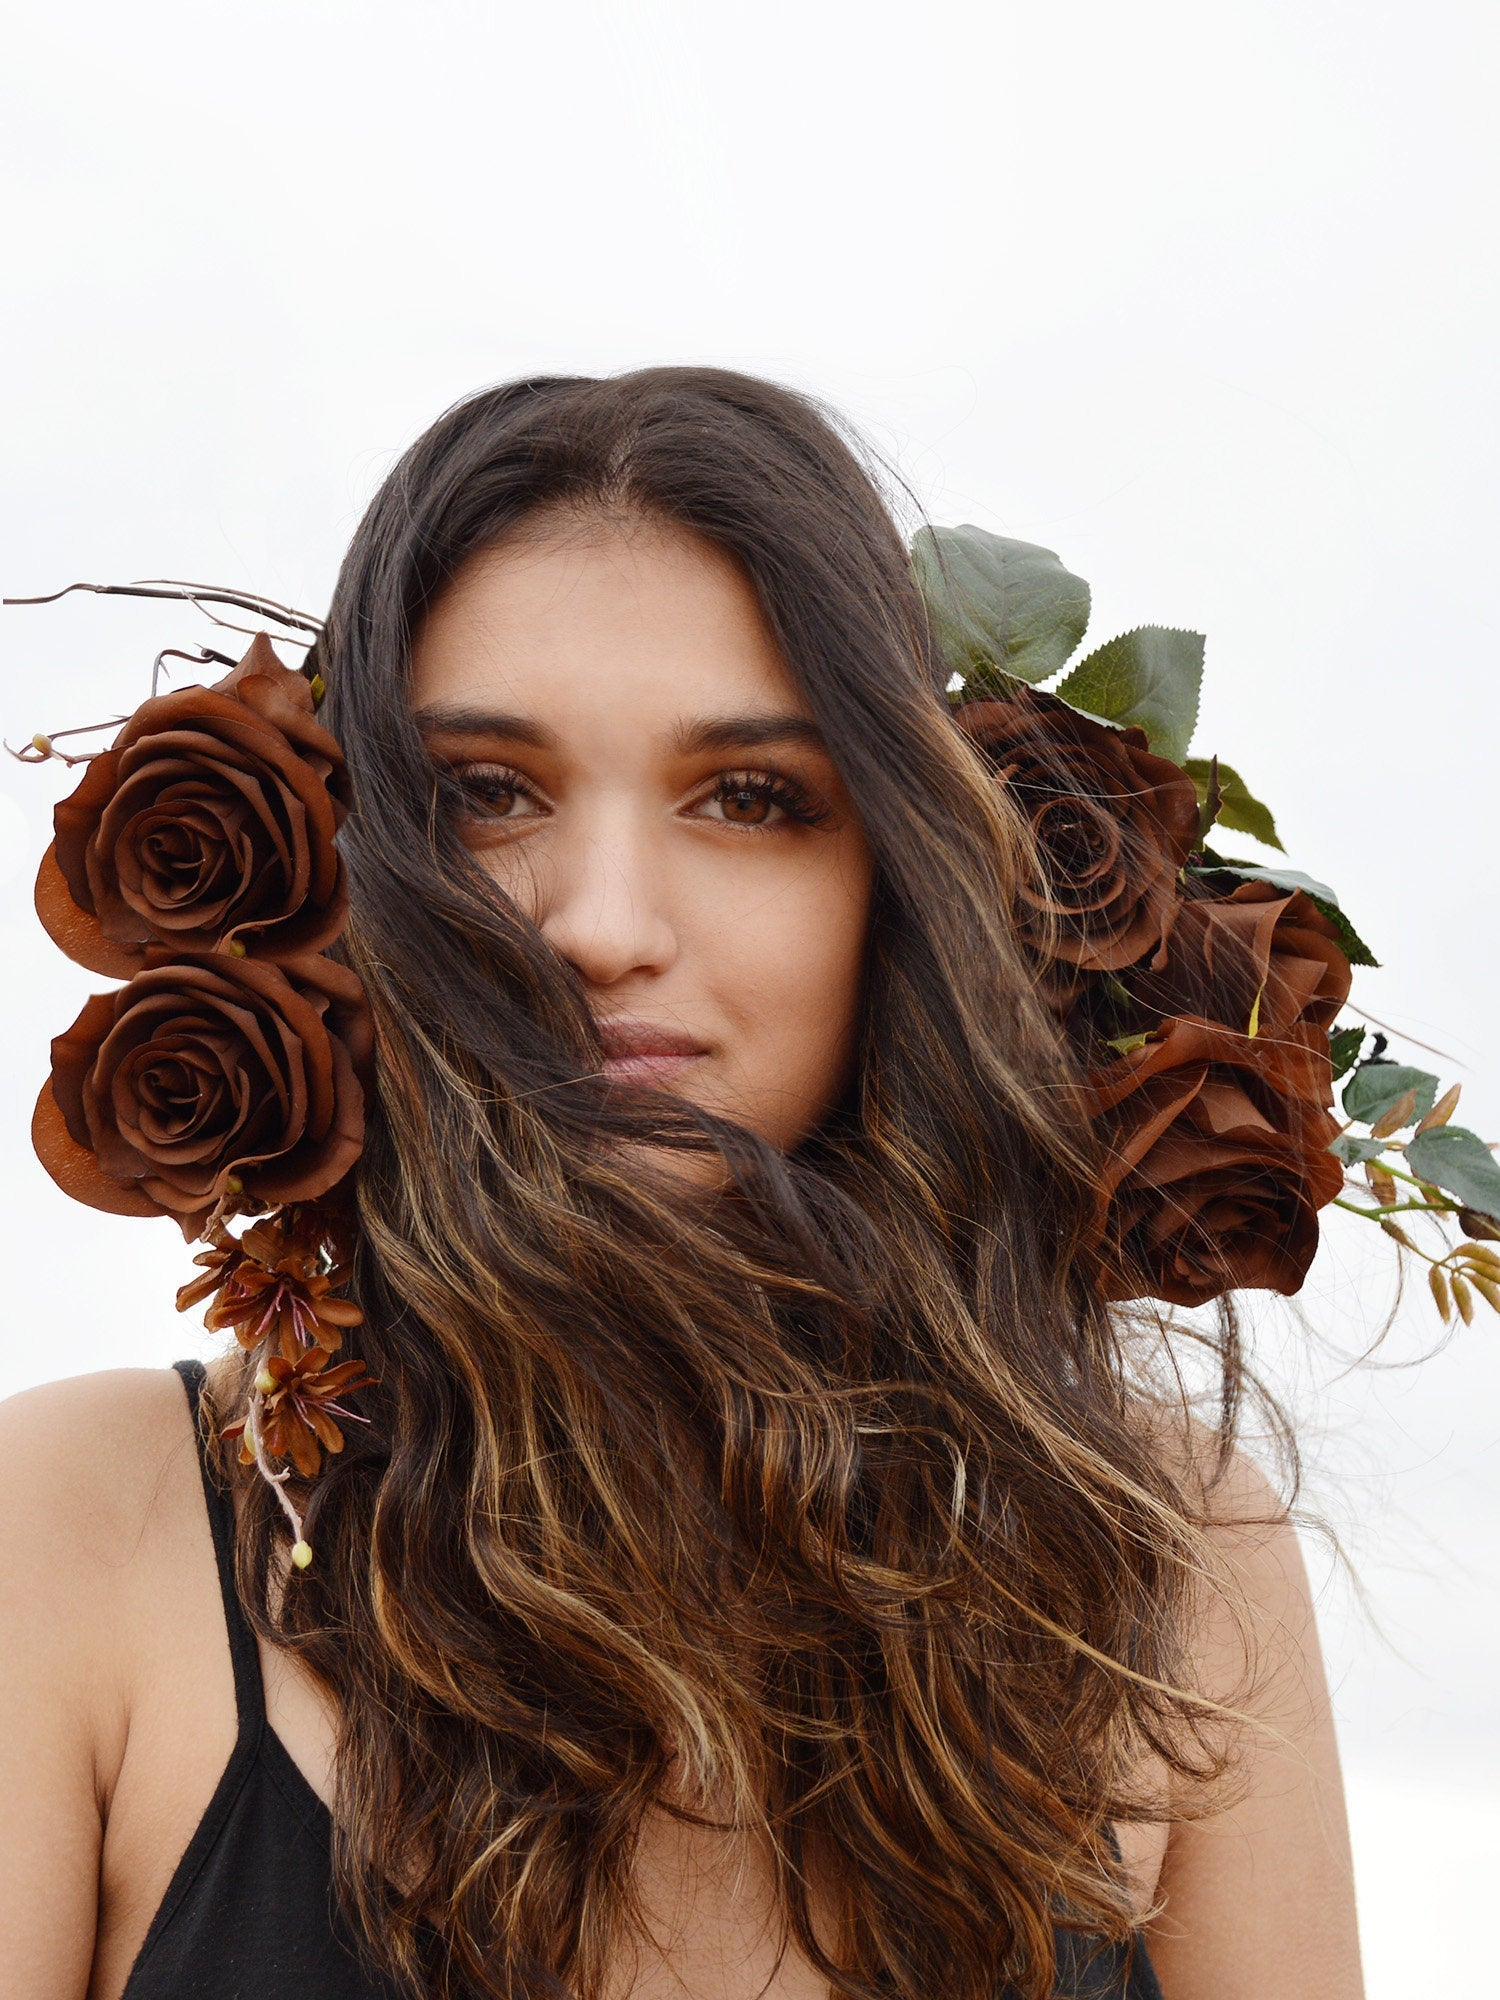 Brunette model wearing bridal flower crown with brown roses, branches, and leaves.